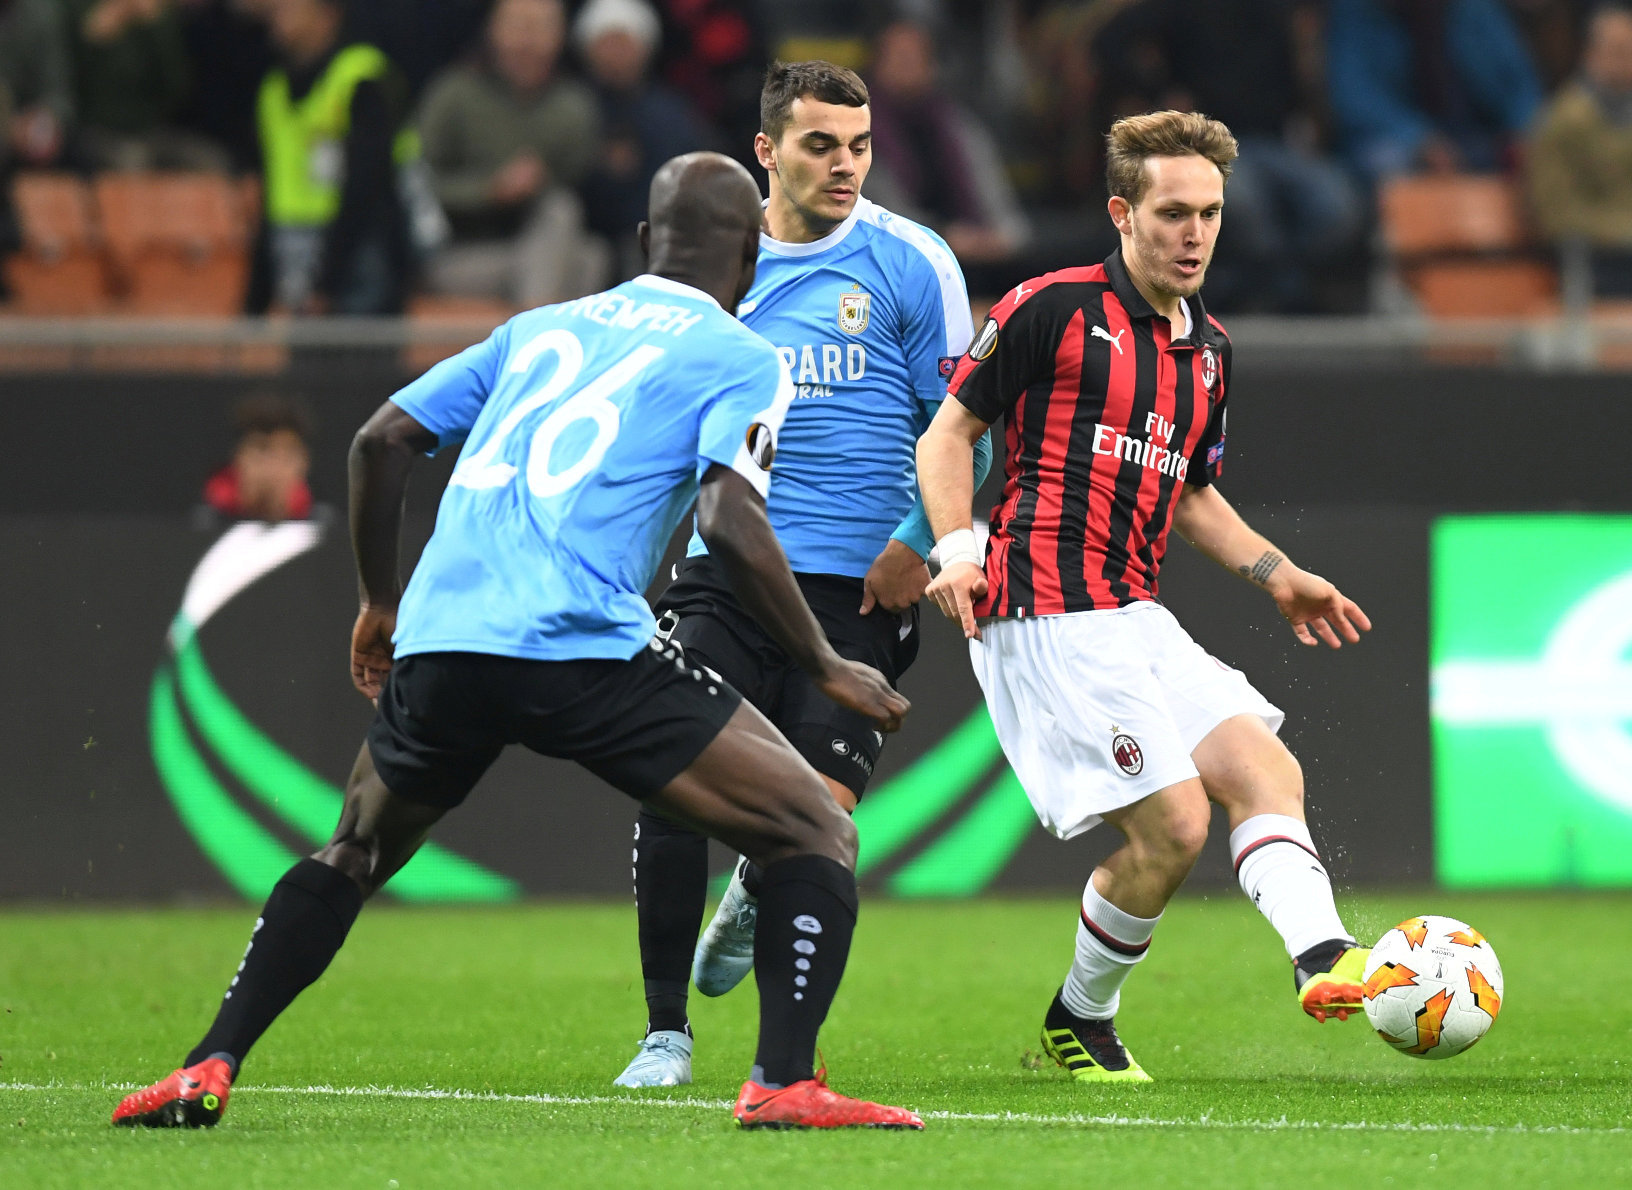 Soccer Football - Europa League - Group Stage - Group F - AC Milan v F91 Dudelange - San Siro, Milan, Italy - November 29, 2018  AC Milan's Alen Halilovic in action with Dudelange's Jerry Prempeh and Danel Sinani          REUTERS/Daniele Mascolo